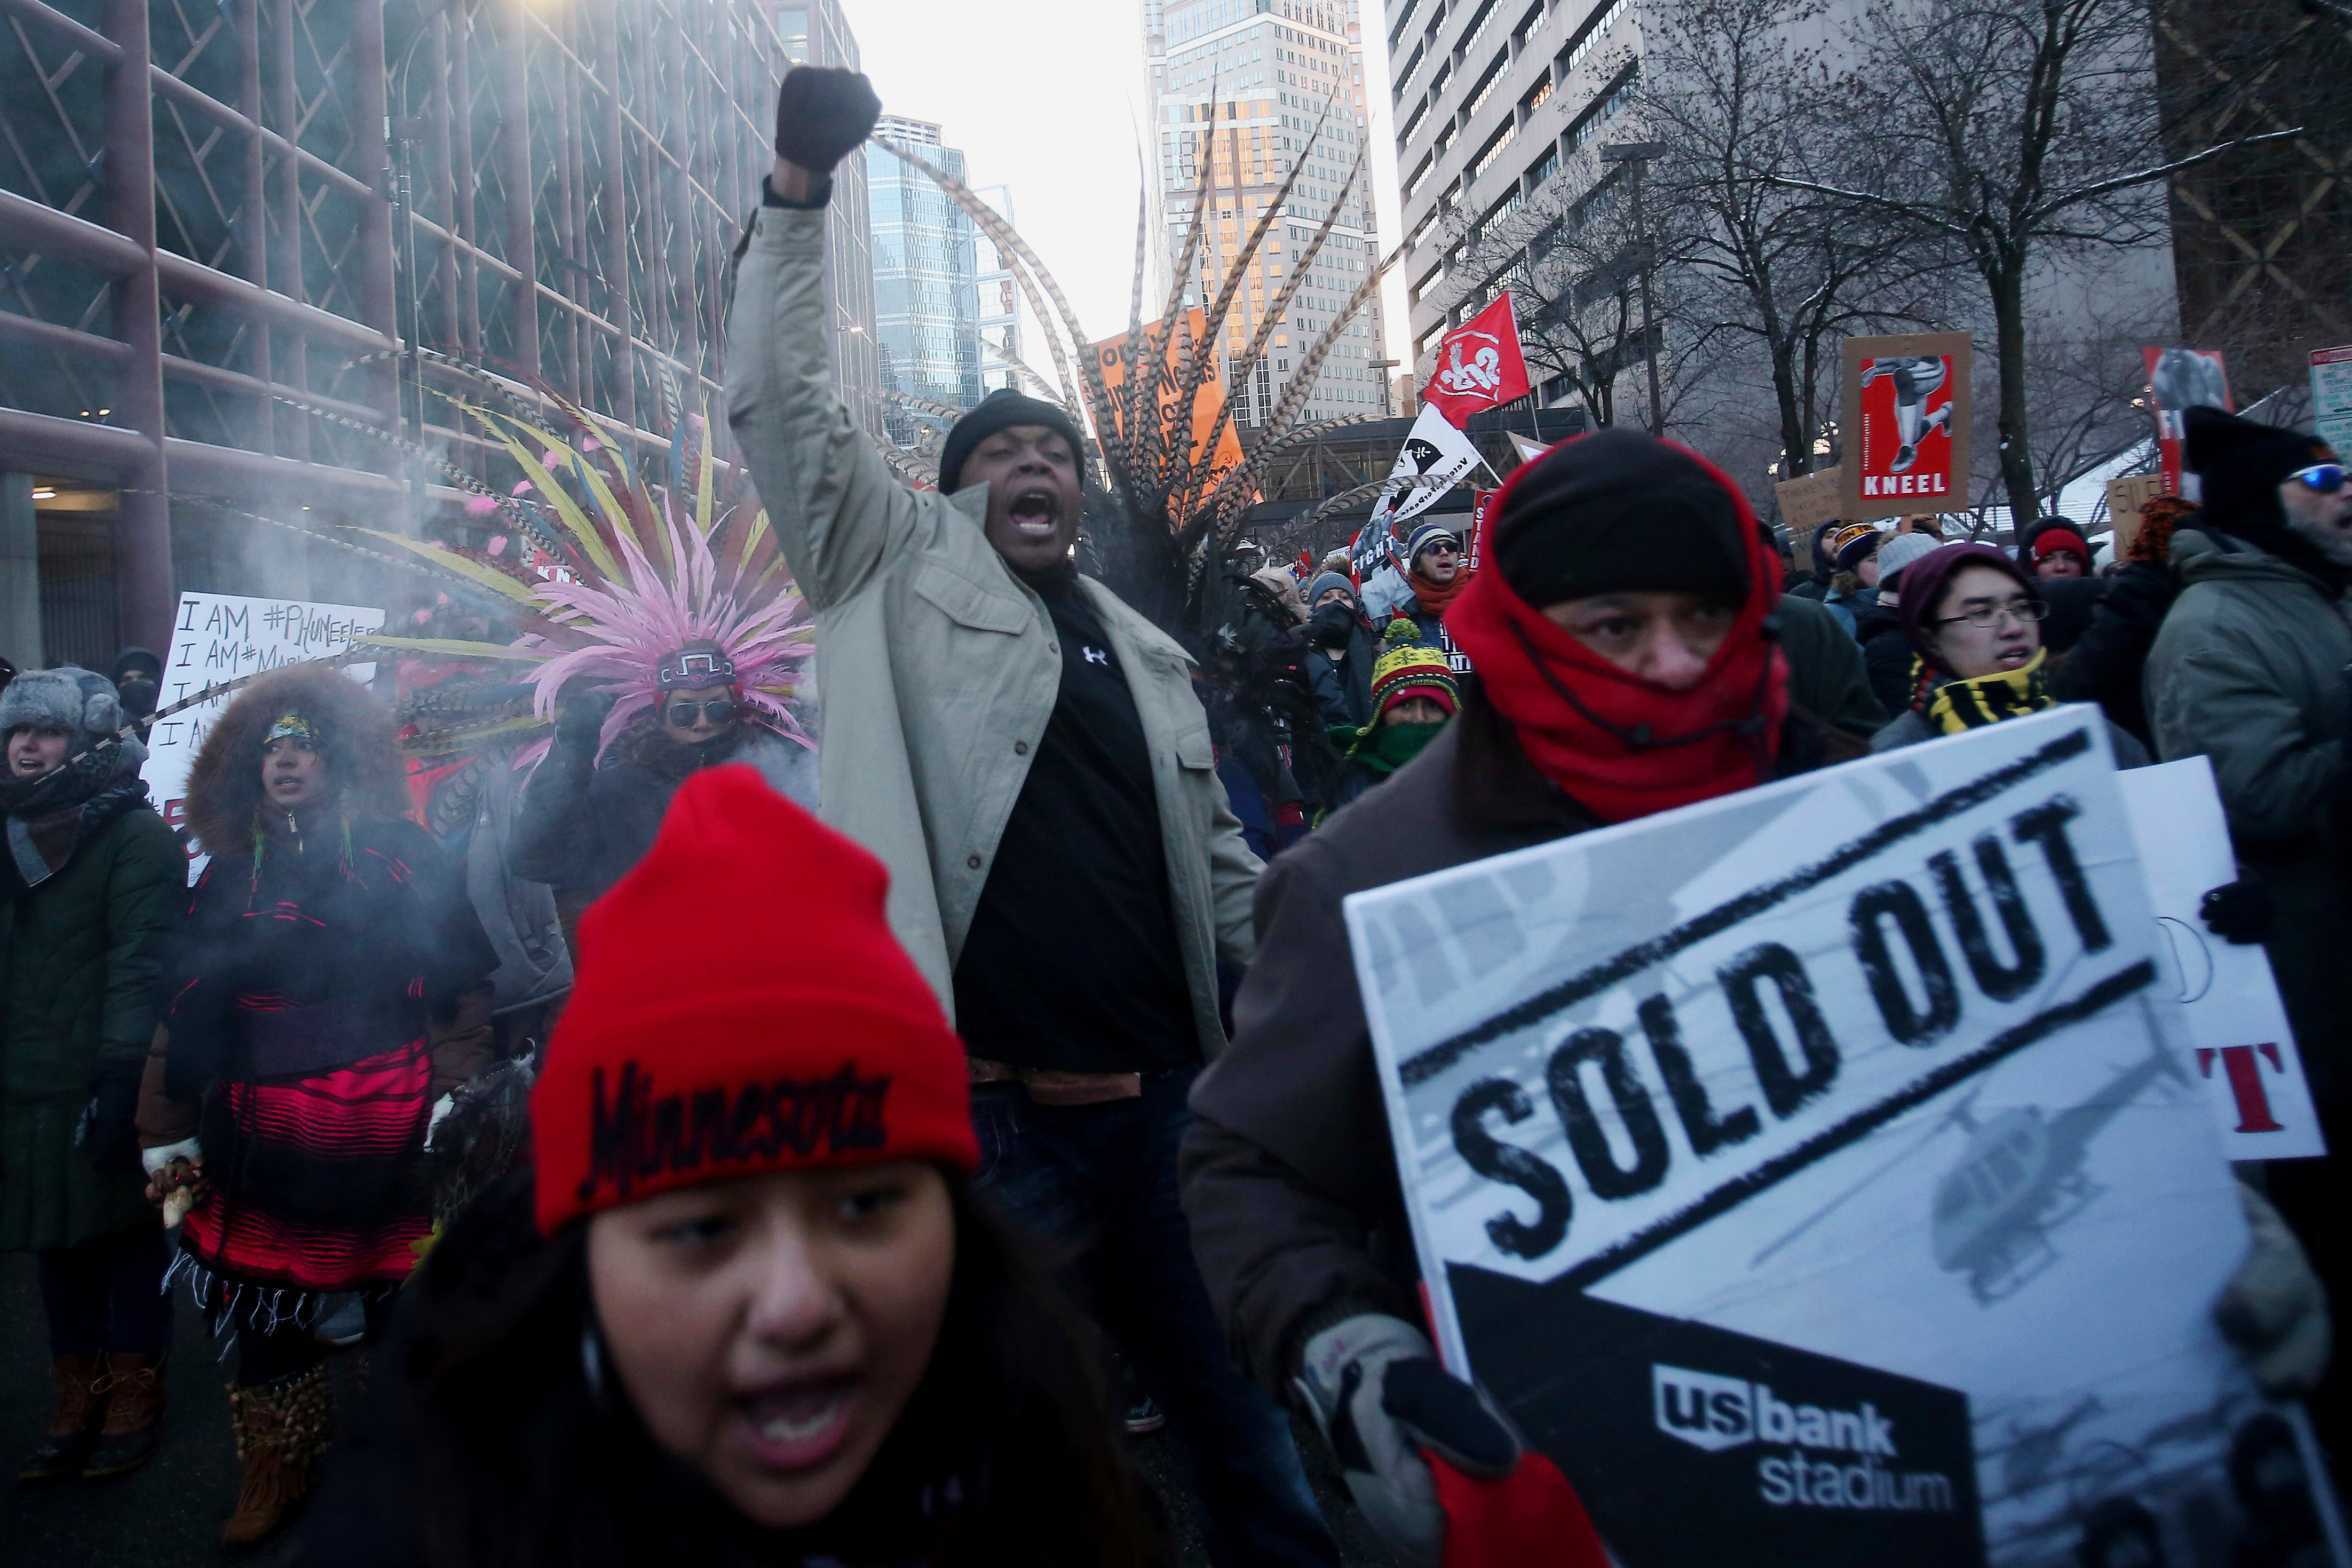 Chaos outside Super Bowl as protesters block trains